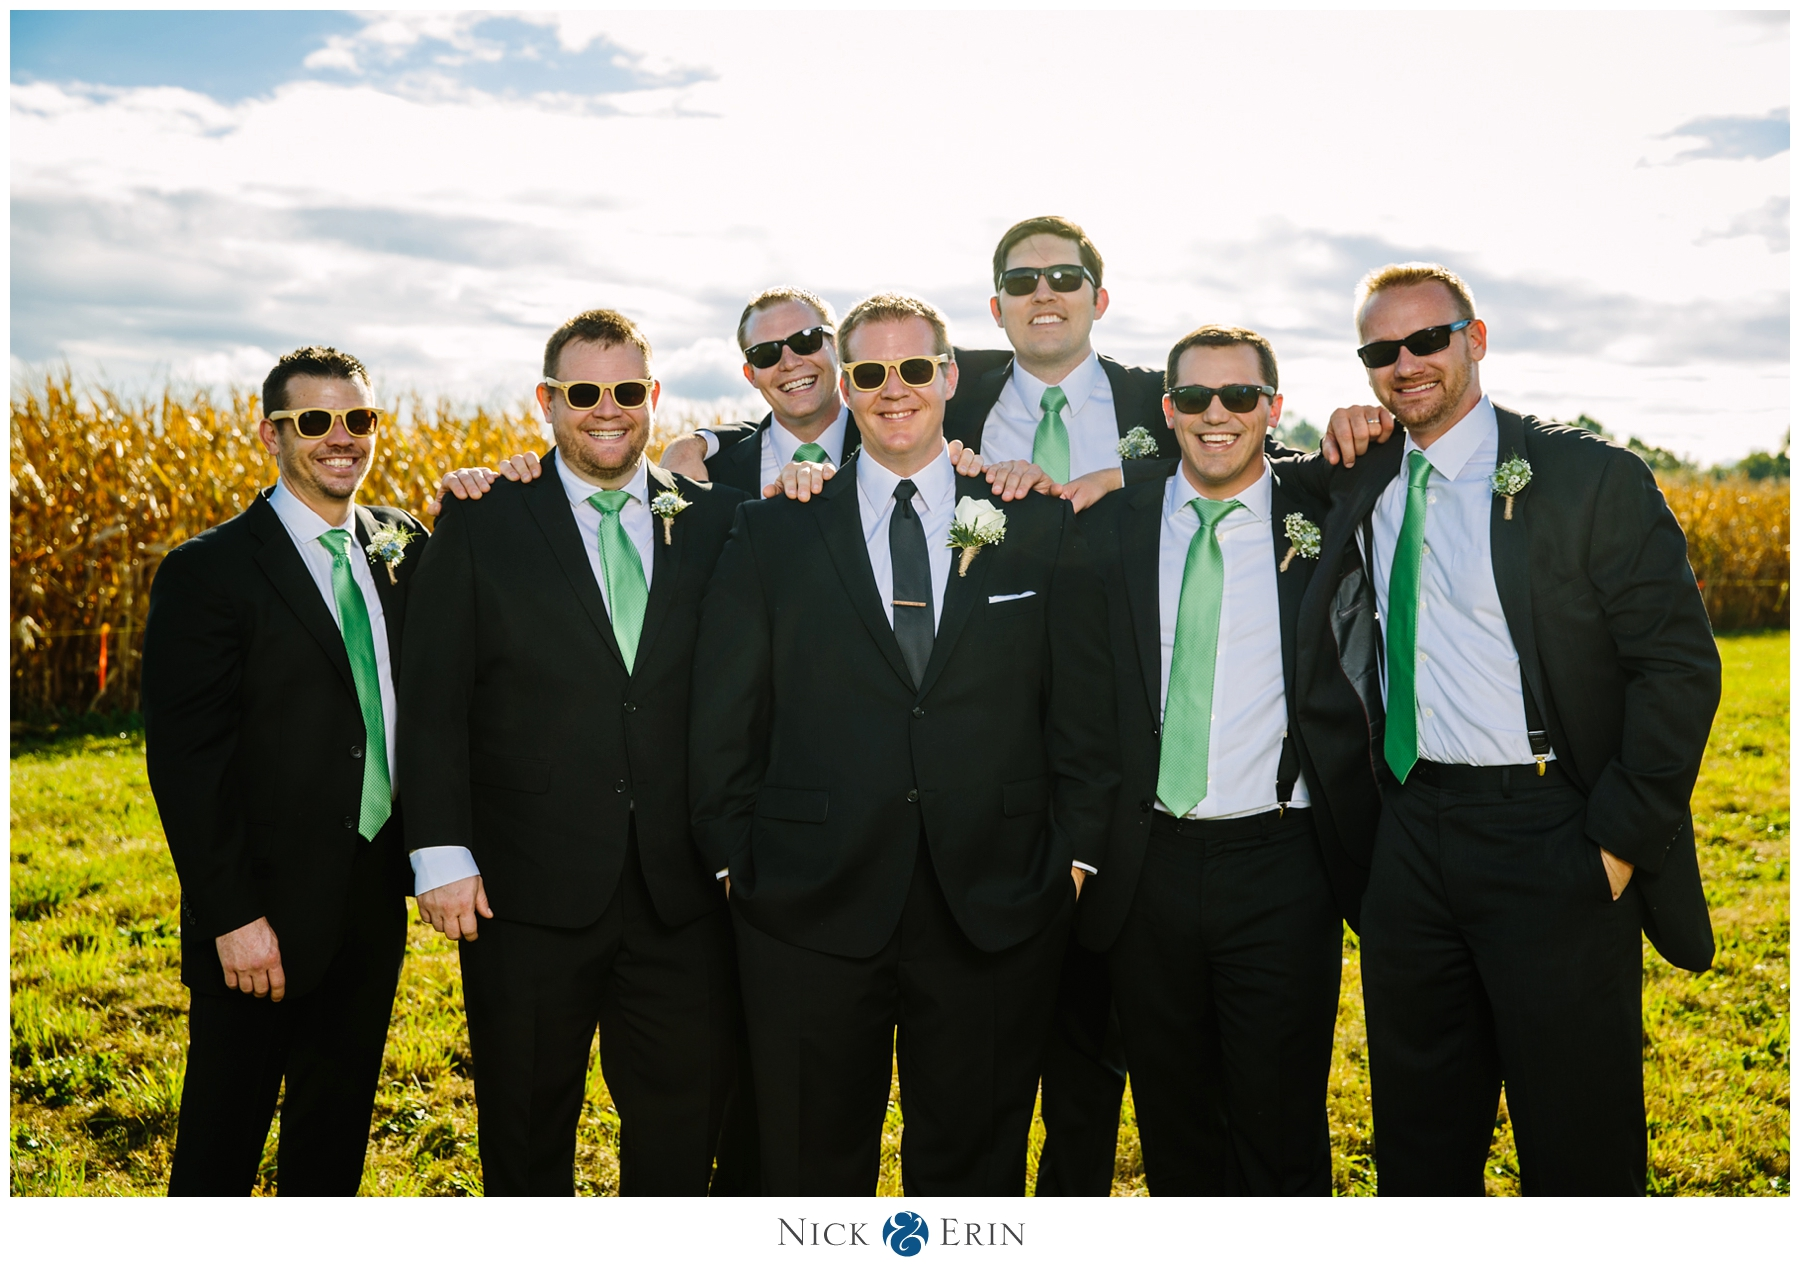 donner_photography_iowa-wedding_katie-chris_0026